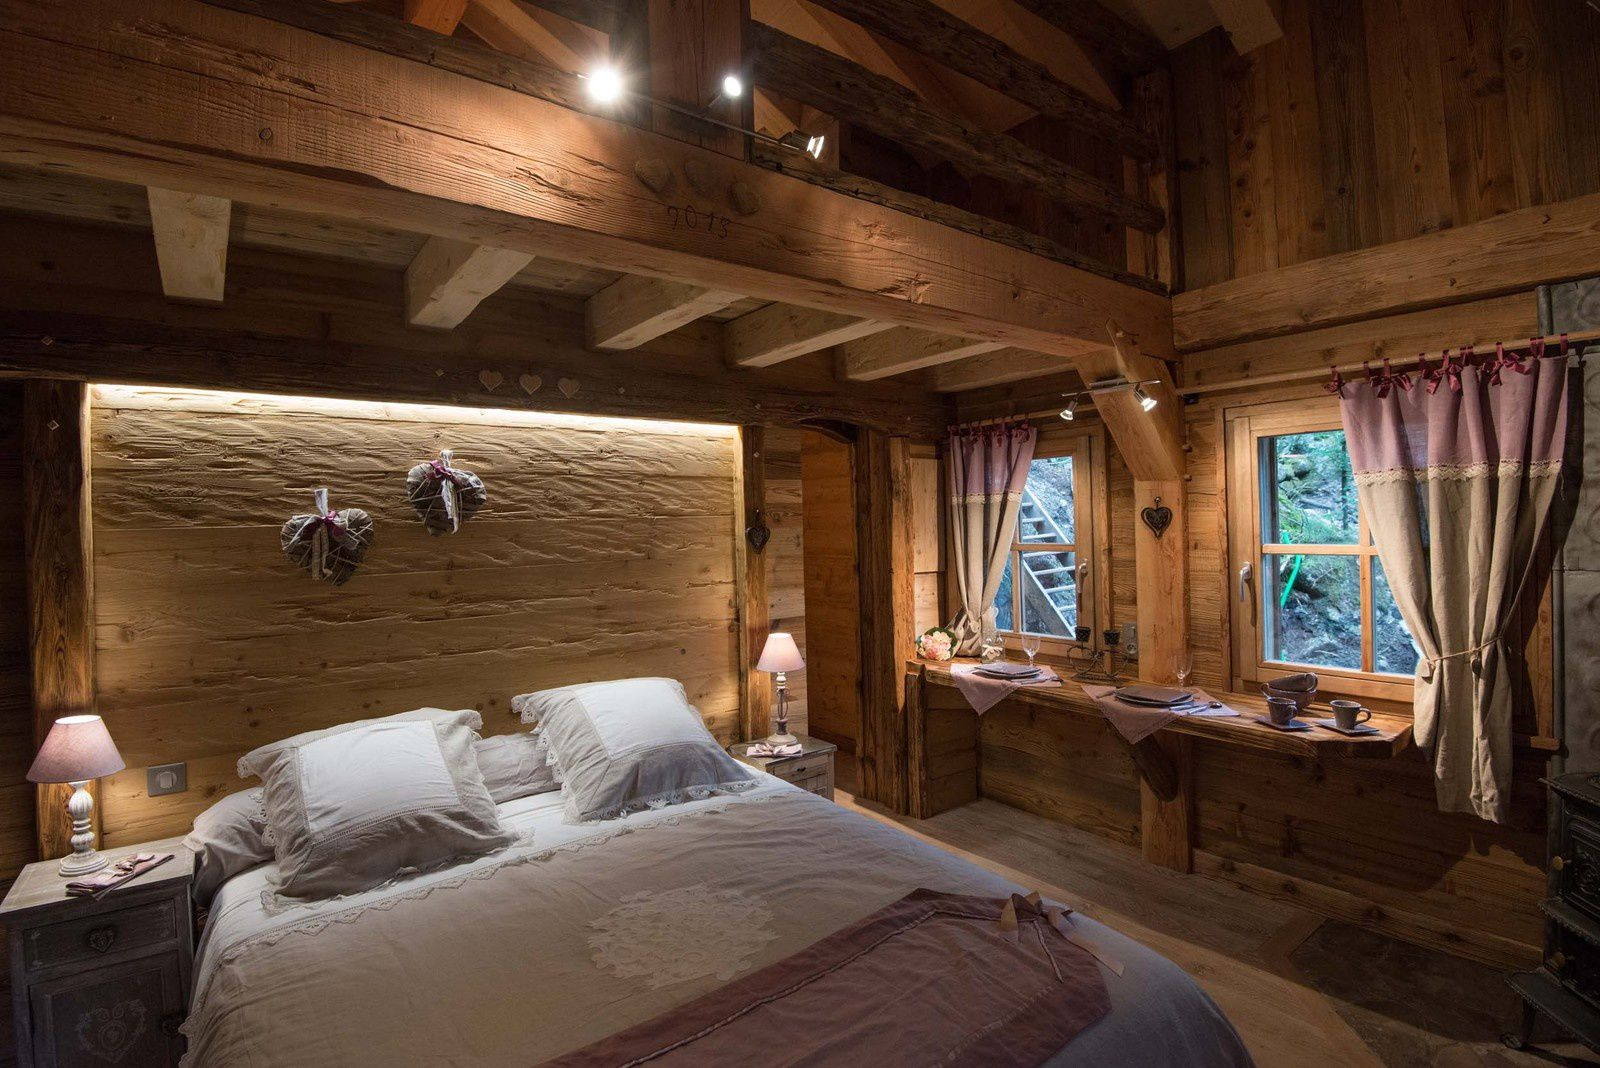 nuit insolite dans un amour de chalet bol d 39 air la. Black Bedroom Furniture Sets. Home Design Ideas